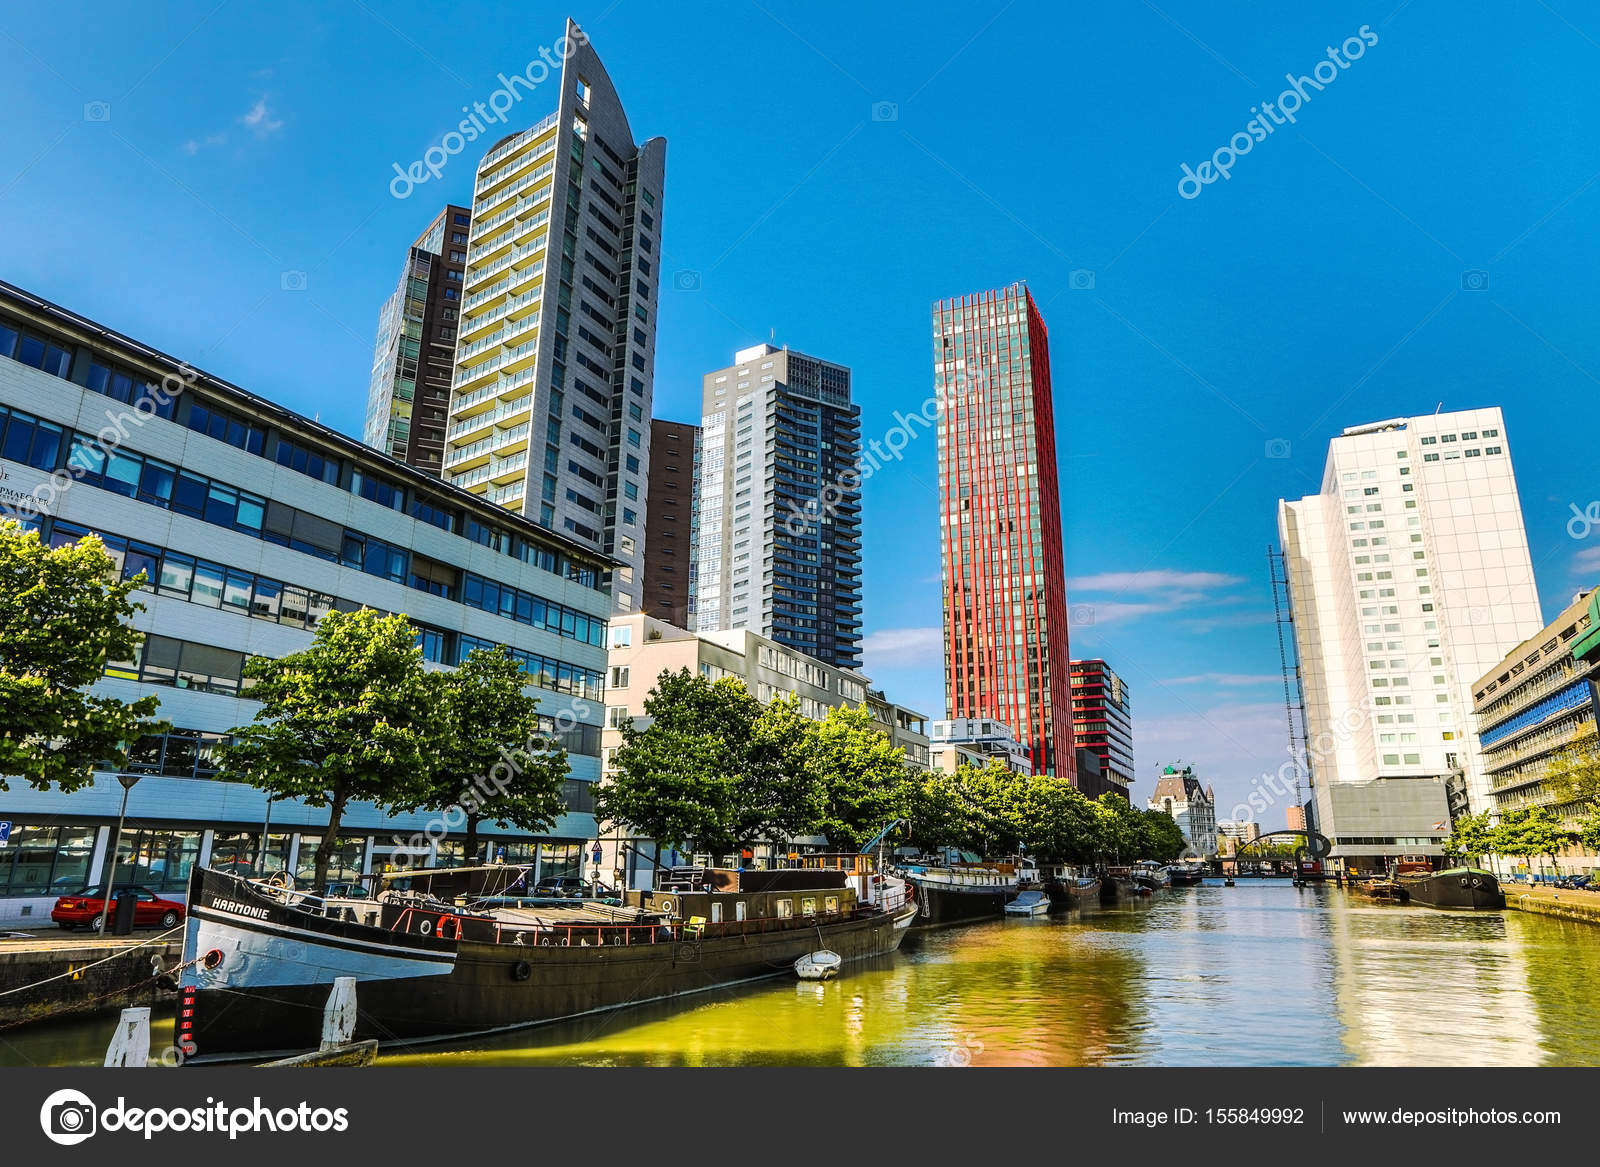 ROTTERDAM, NETHERLANDS   MAY 17, 2017: Modern Buildings City Architecture  Close Up Design Elements At Day Time. May 17, 2017 In Rotterdam    Netherlands.